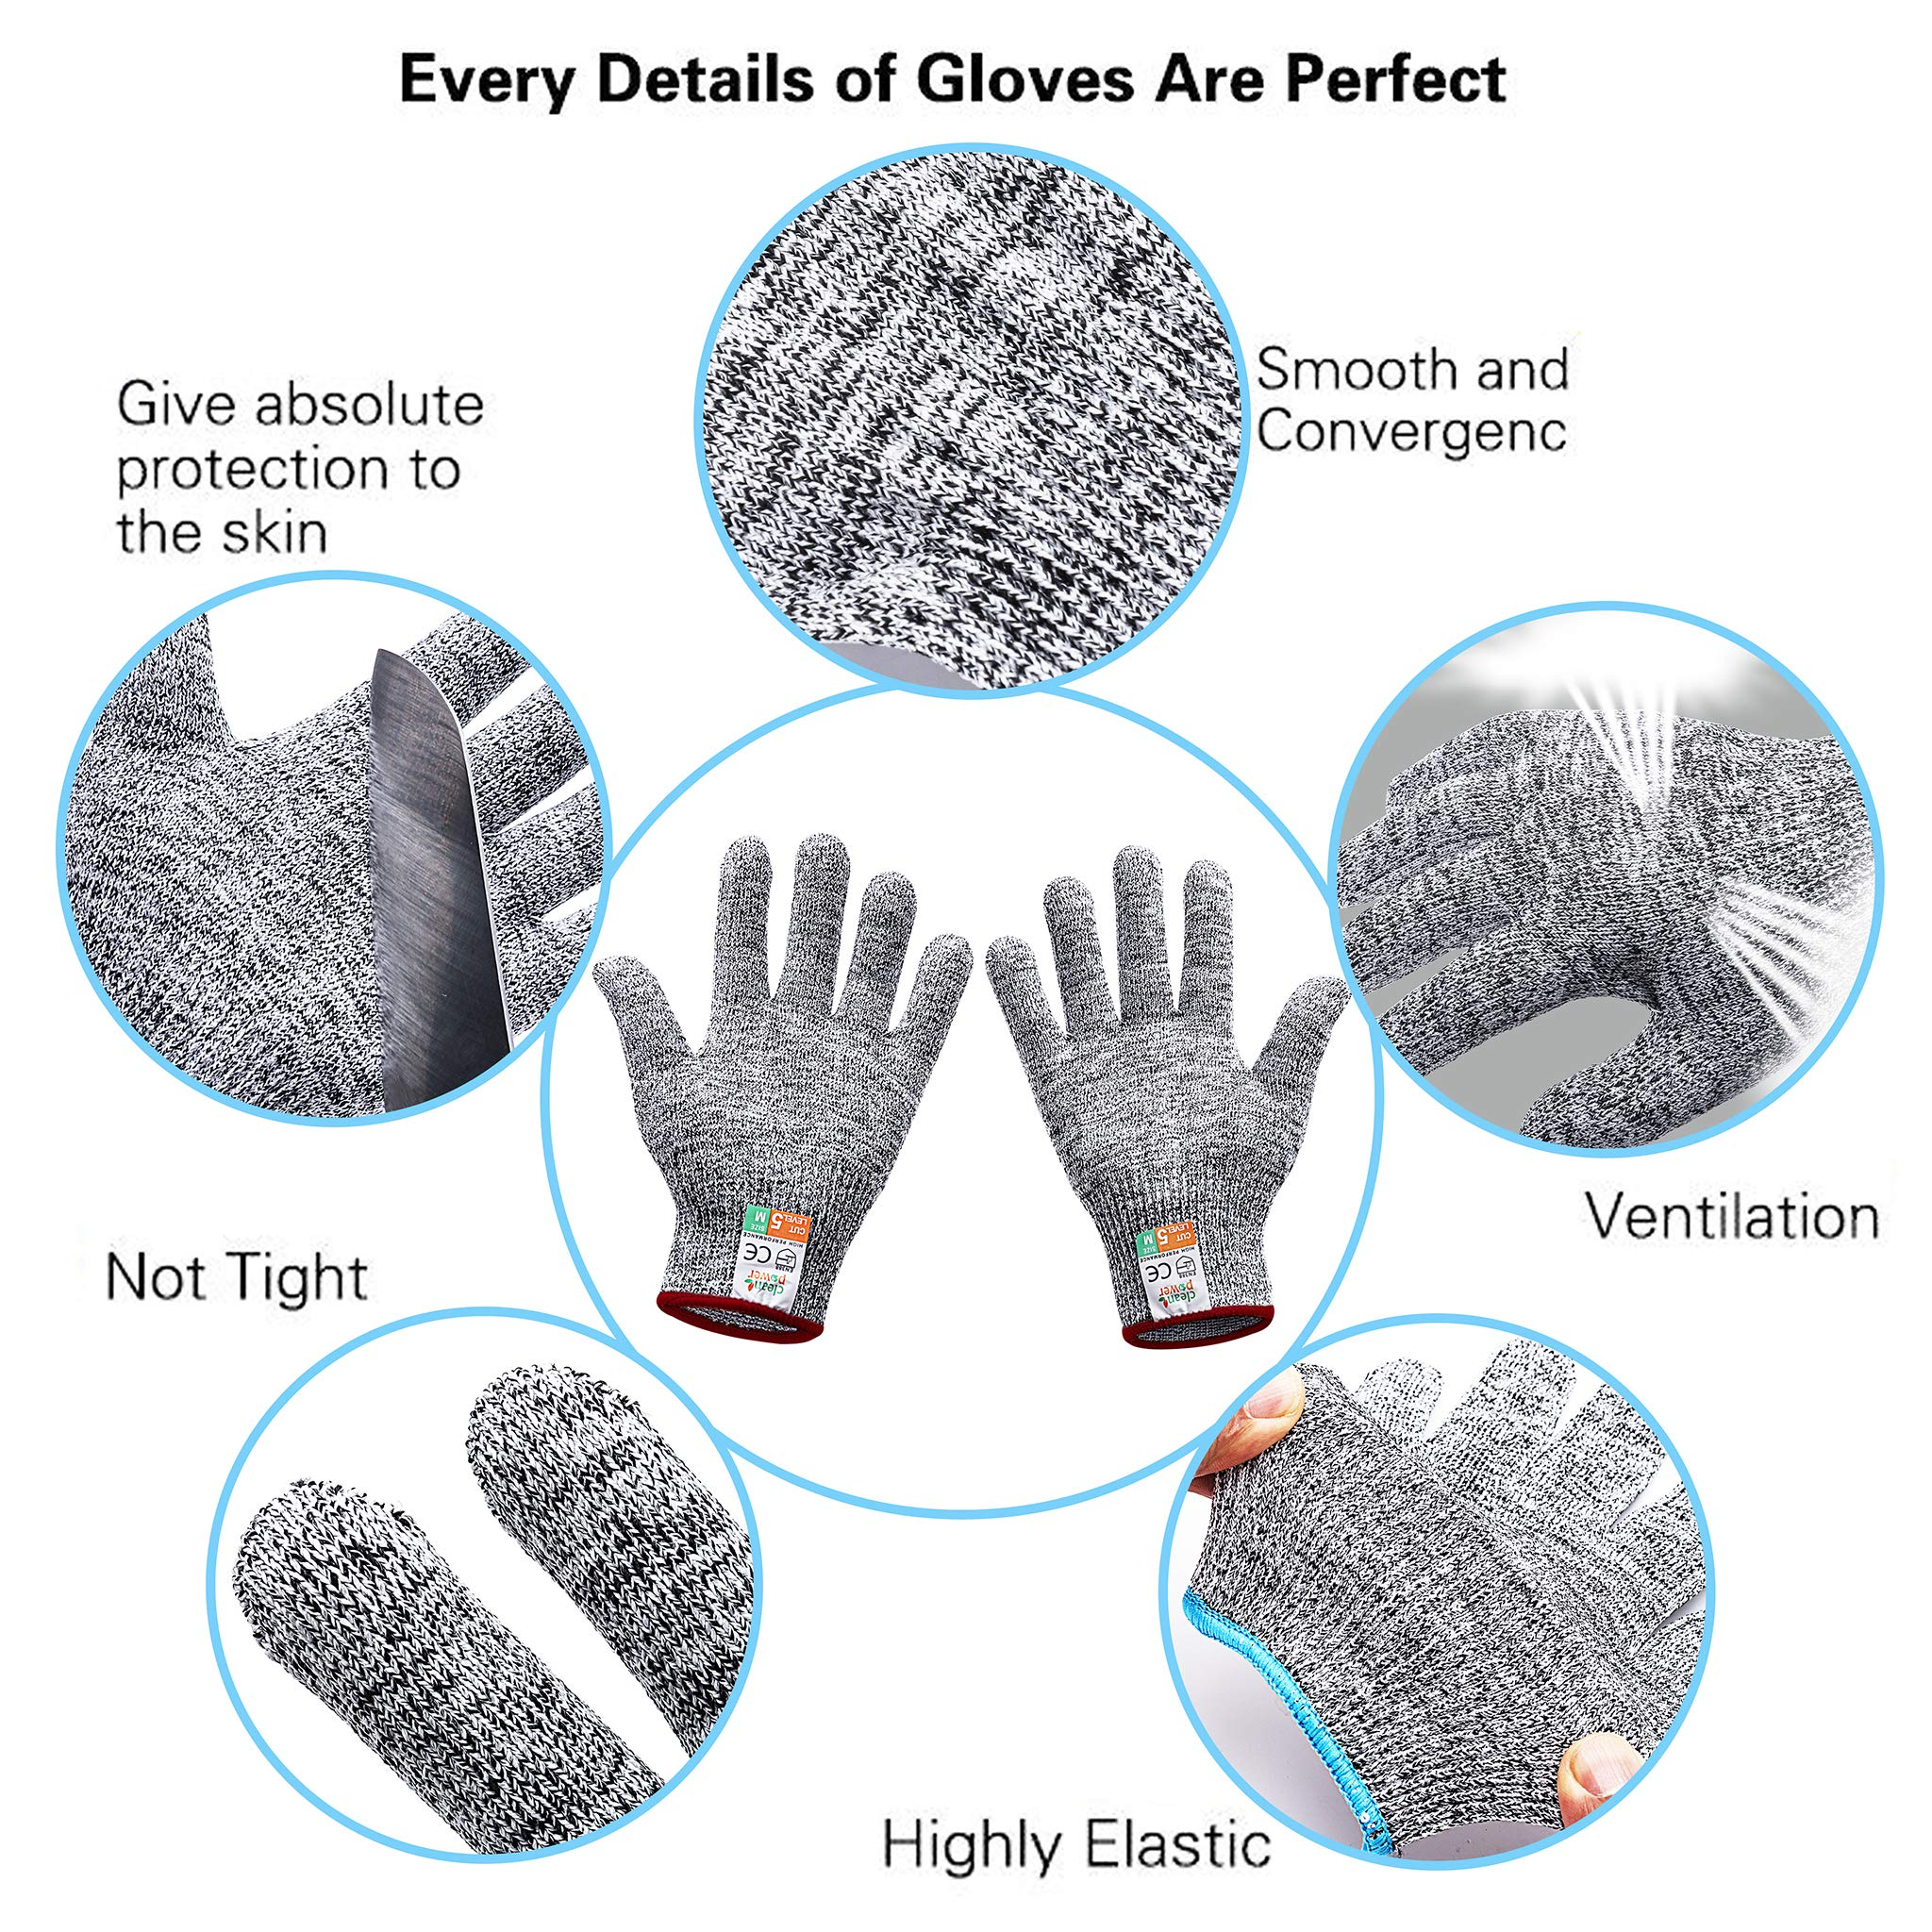 Gorich Cut Resistant Gloves Yard Work Doing,Labor Protecting High Performance Level 5 Protection,Food Grade,Safety Kitchten Gloves for Cutting,Oyster Shucking,Fish Fillet Processing Medium